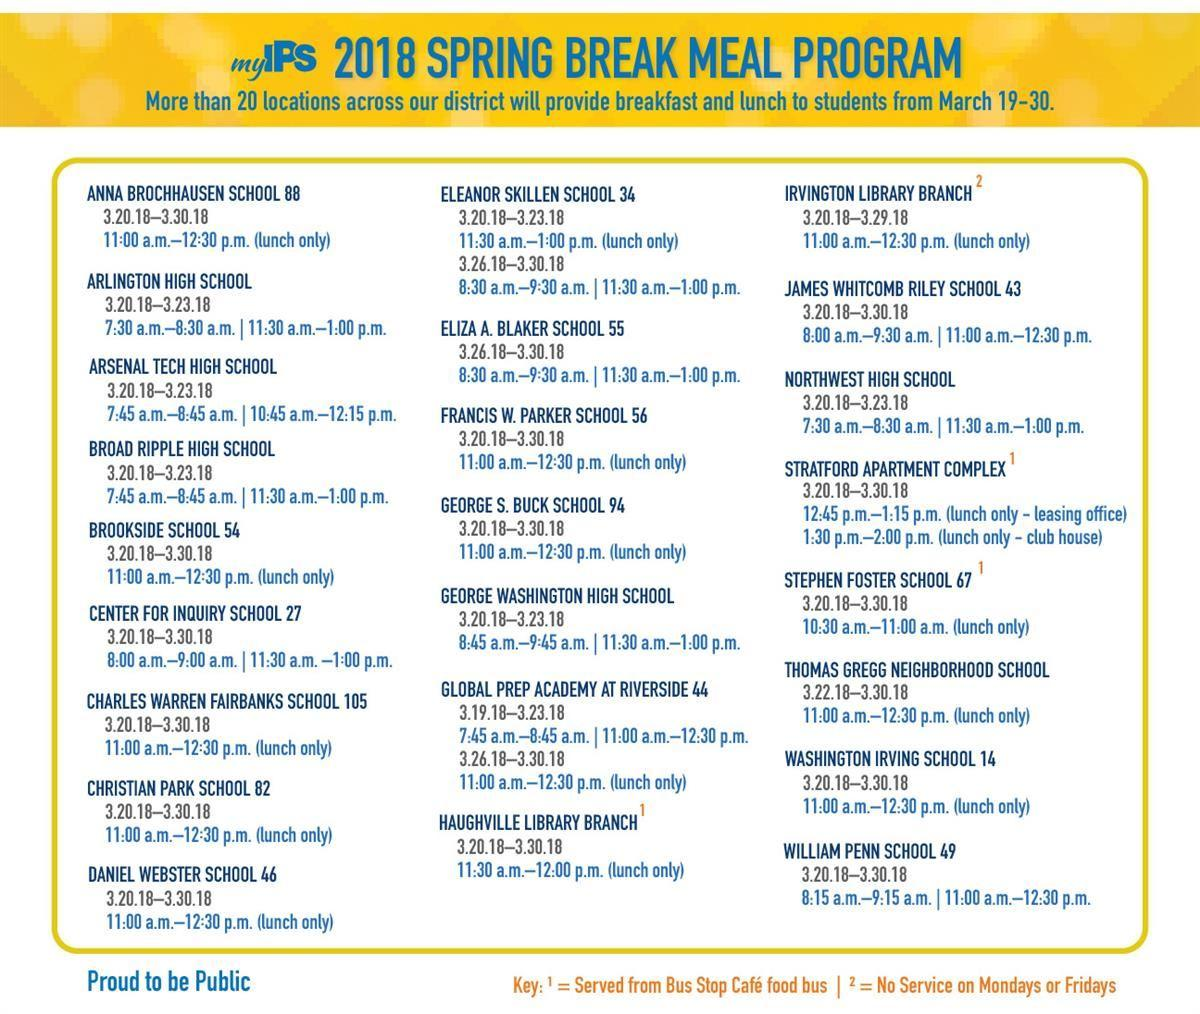 2018 Spring Break Meal Program,